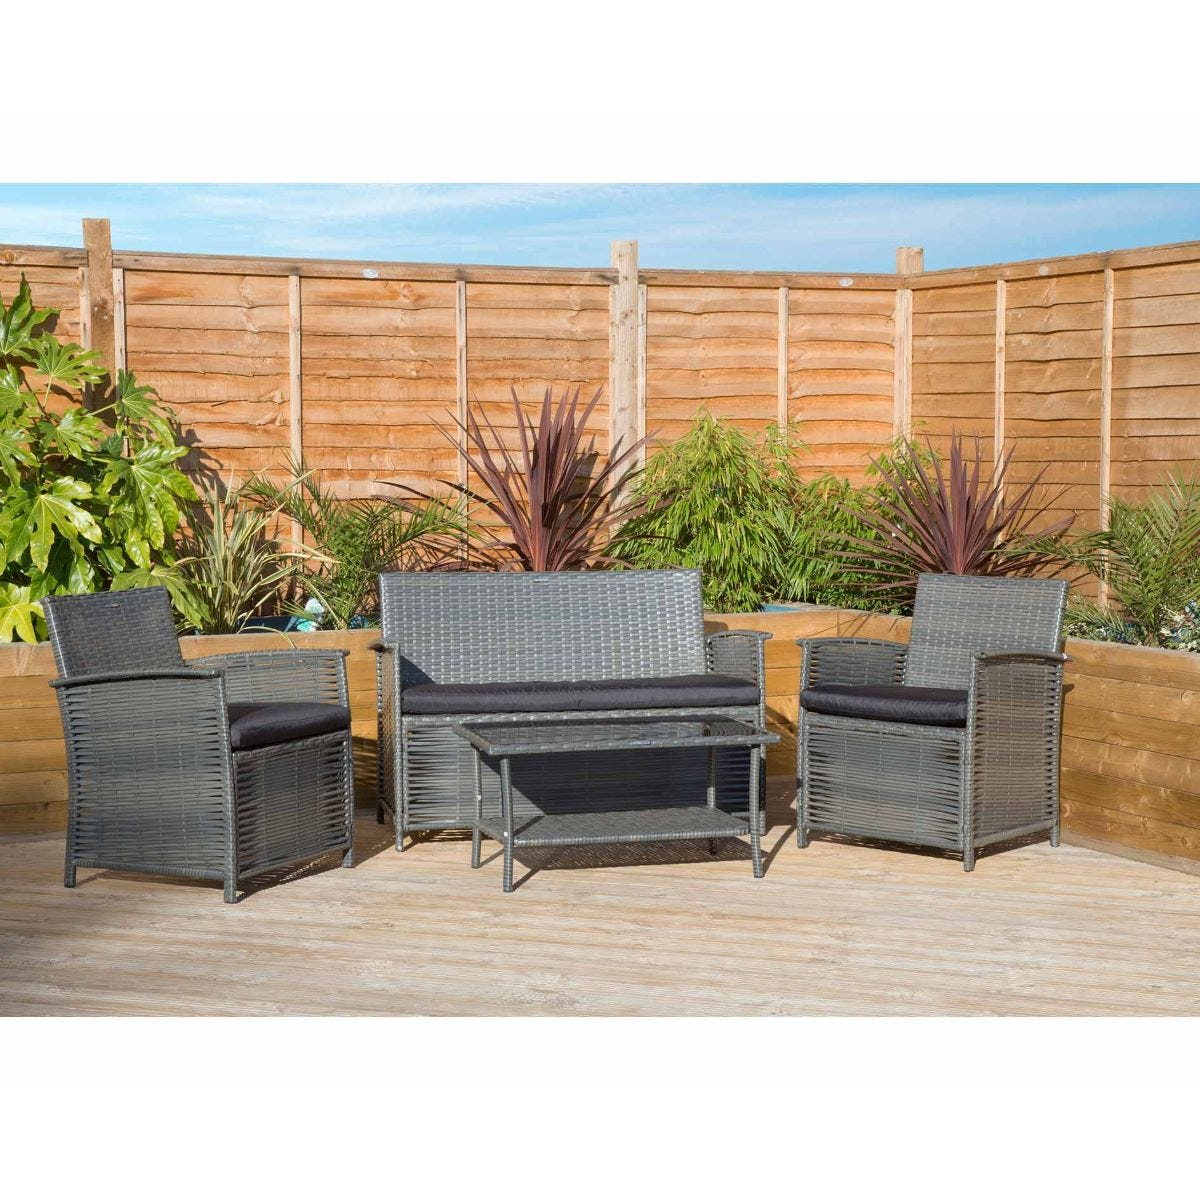 Charles Bentley Rattan Garden Furniture Table and Chairs Set, Black